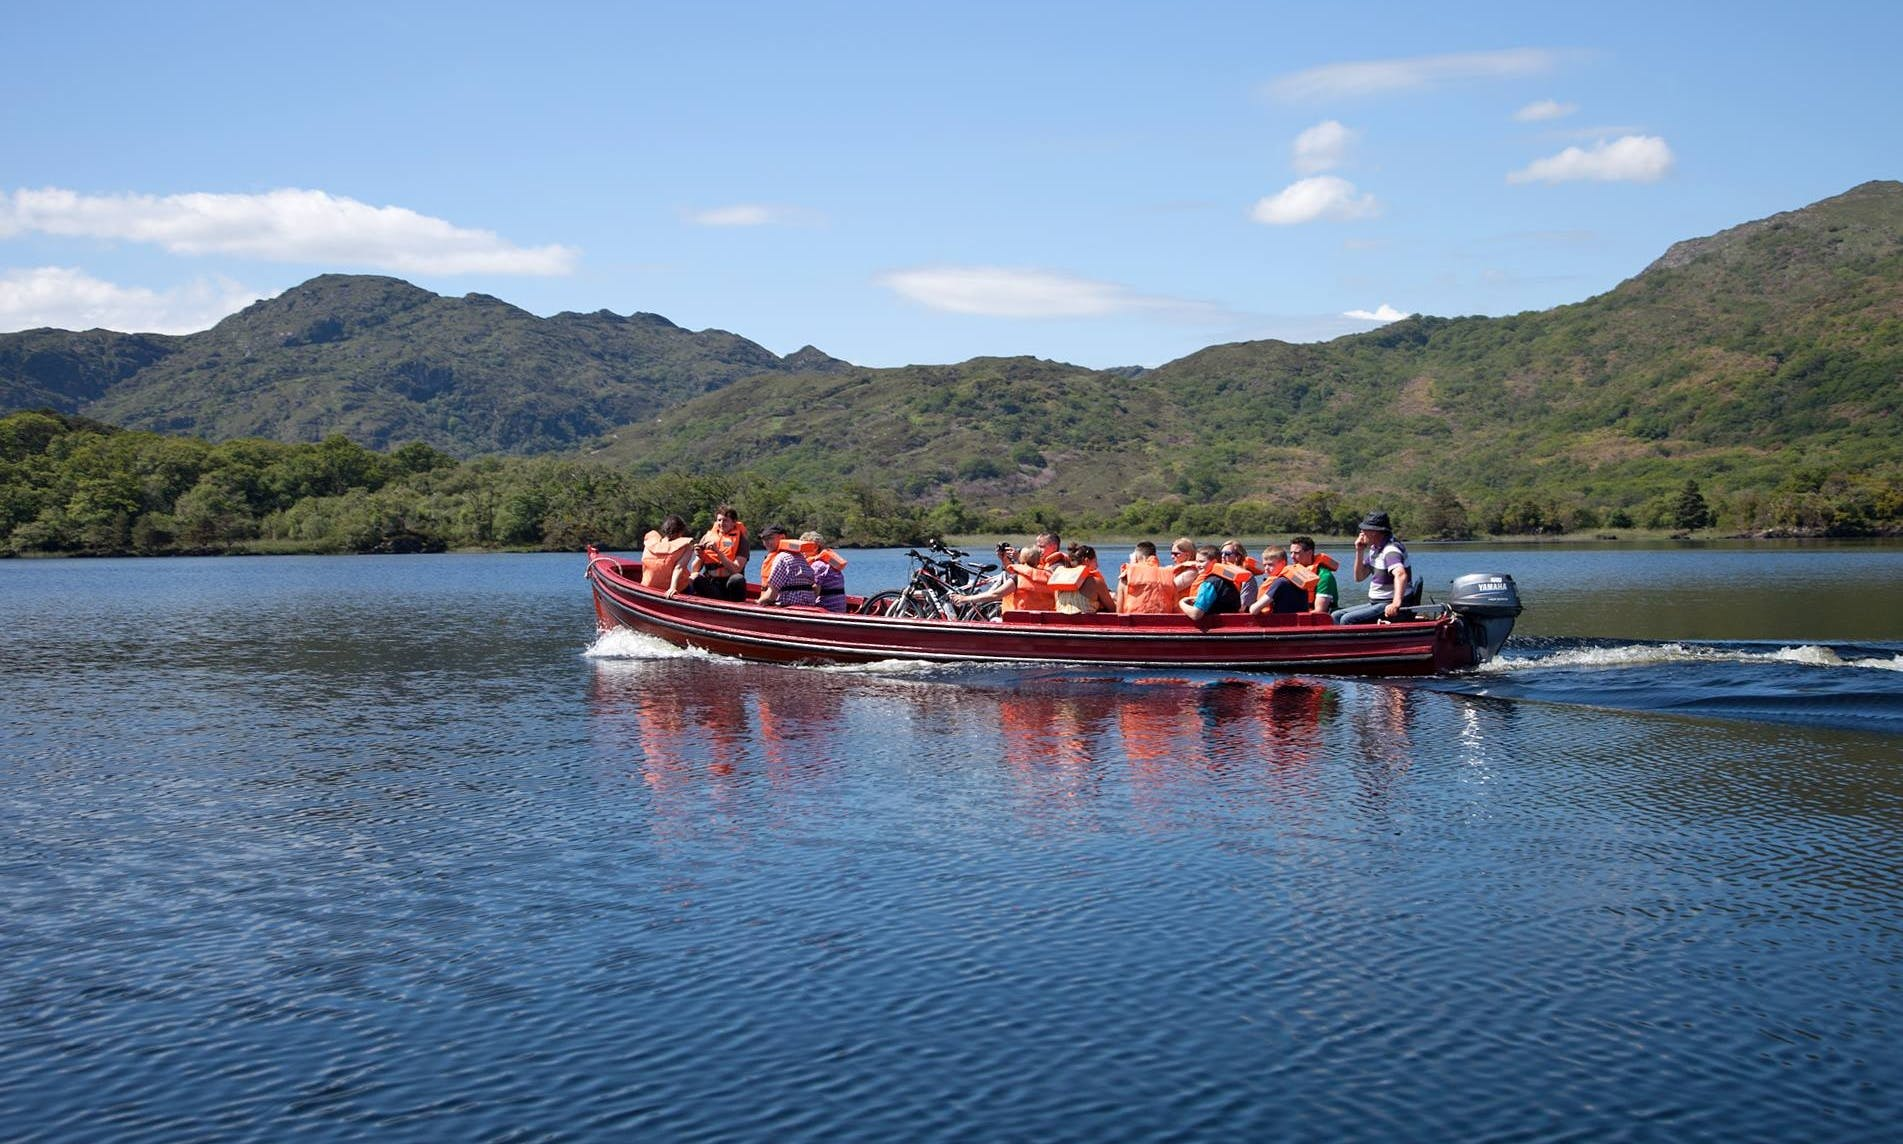 Amazing Sightseeing Boat Tour in Killarney, Ireland